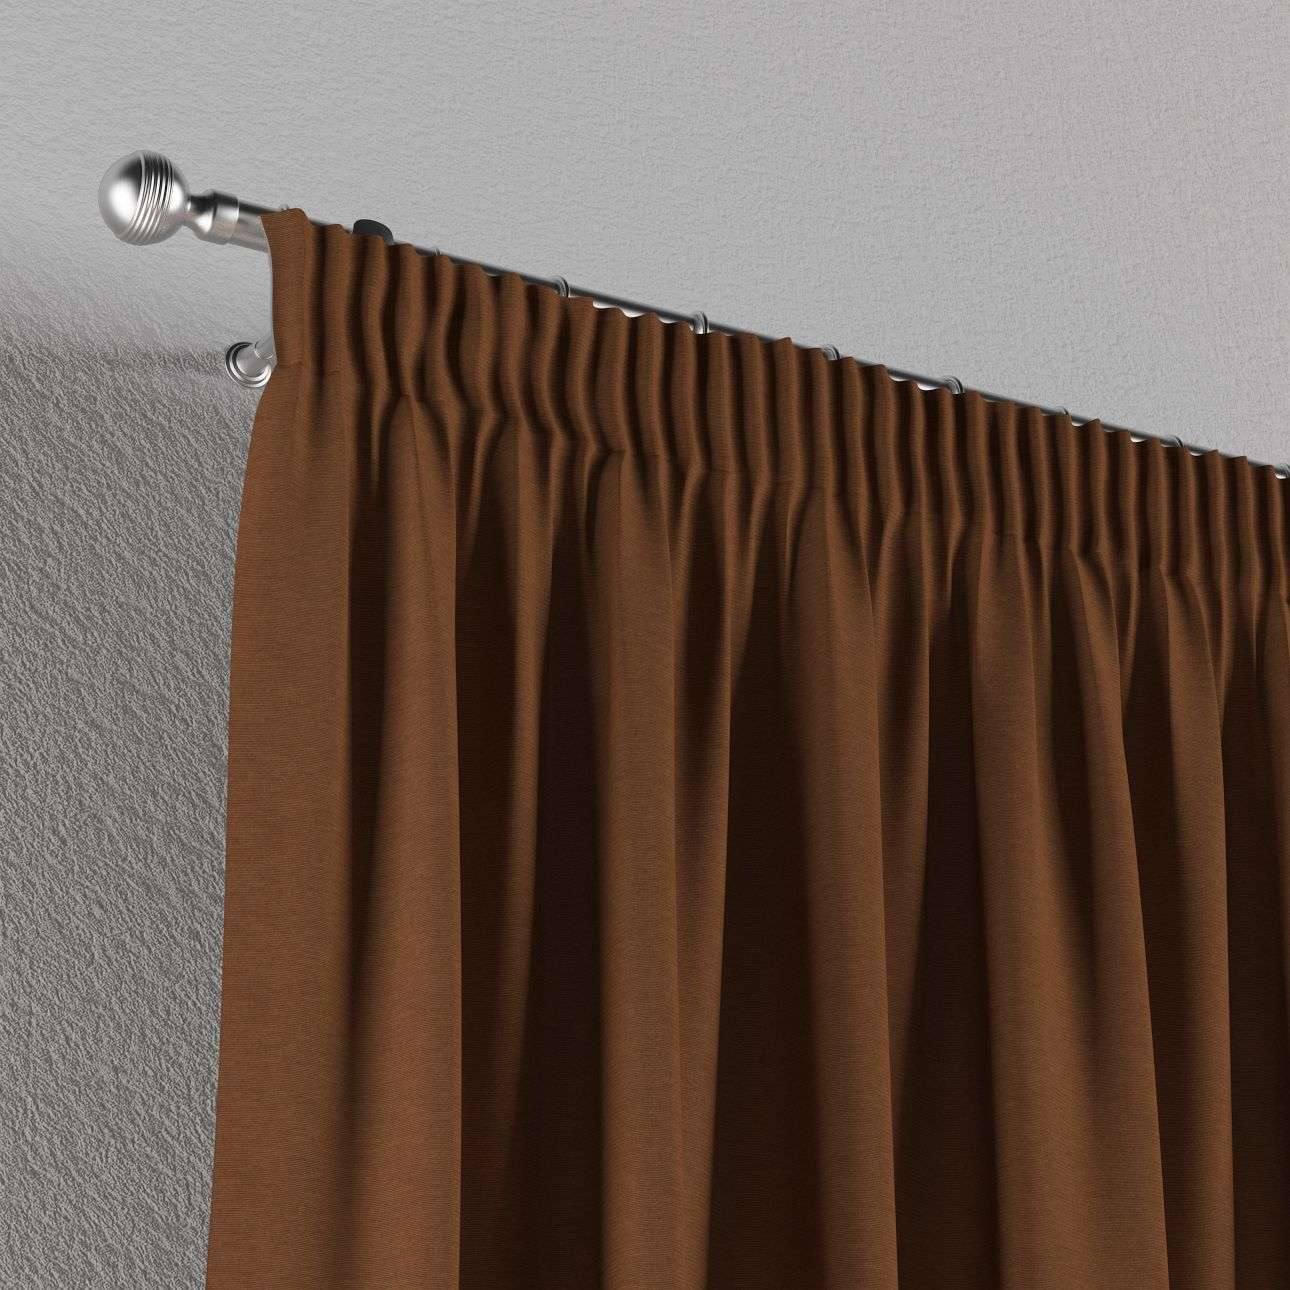 Pencil pleat curtains 130 x 260 cm (51 x 102 inch) in collection Jupiter, fabric: 127-88